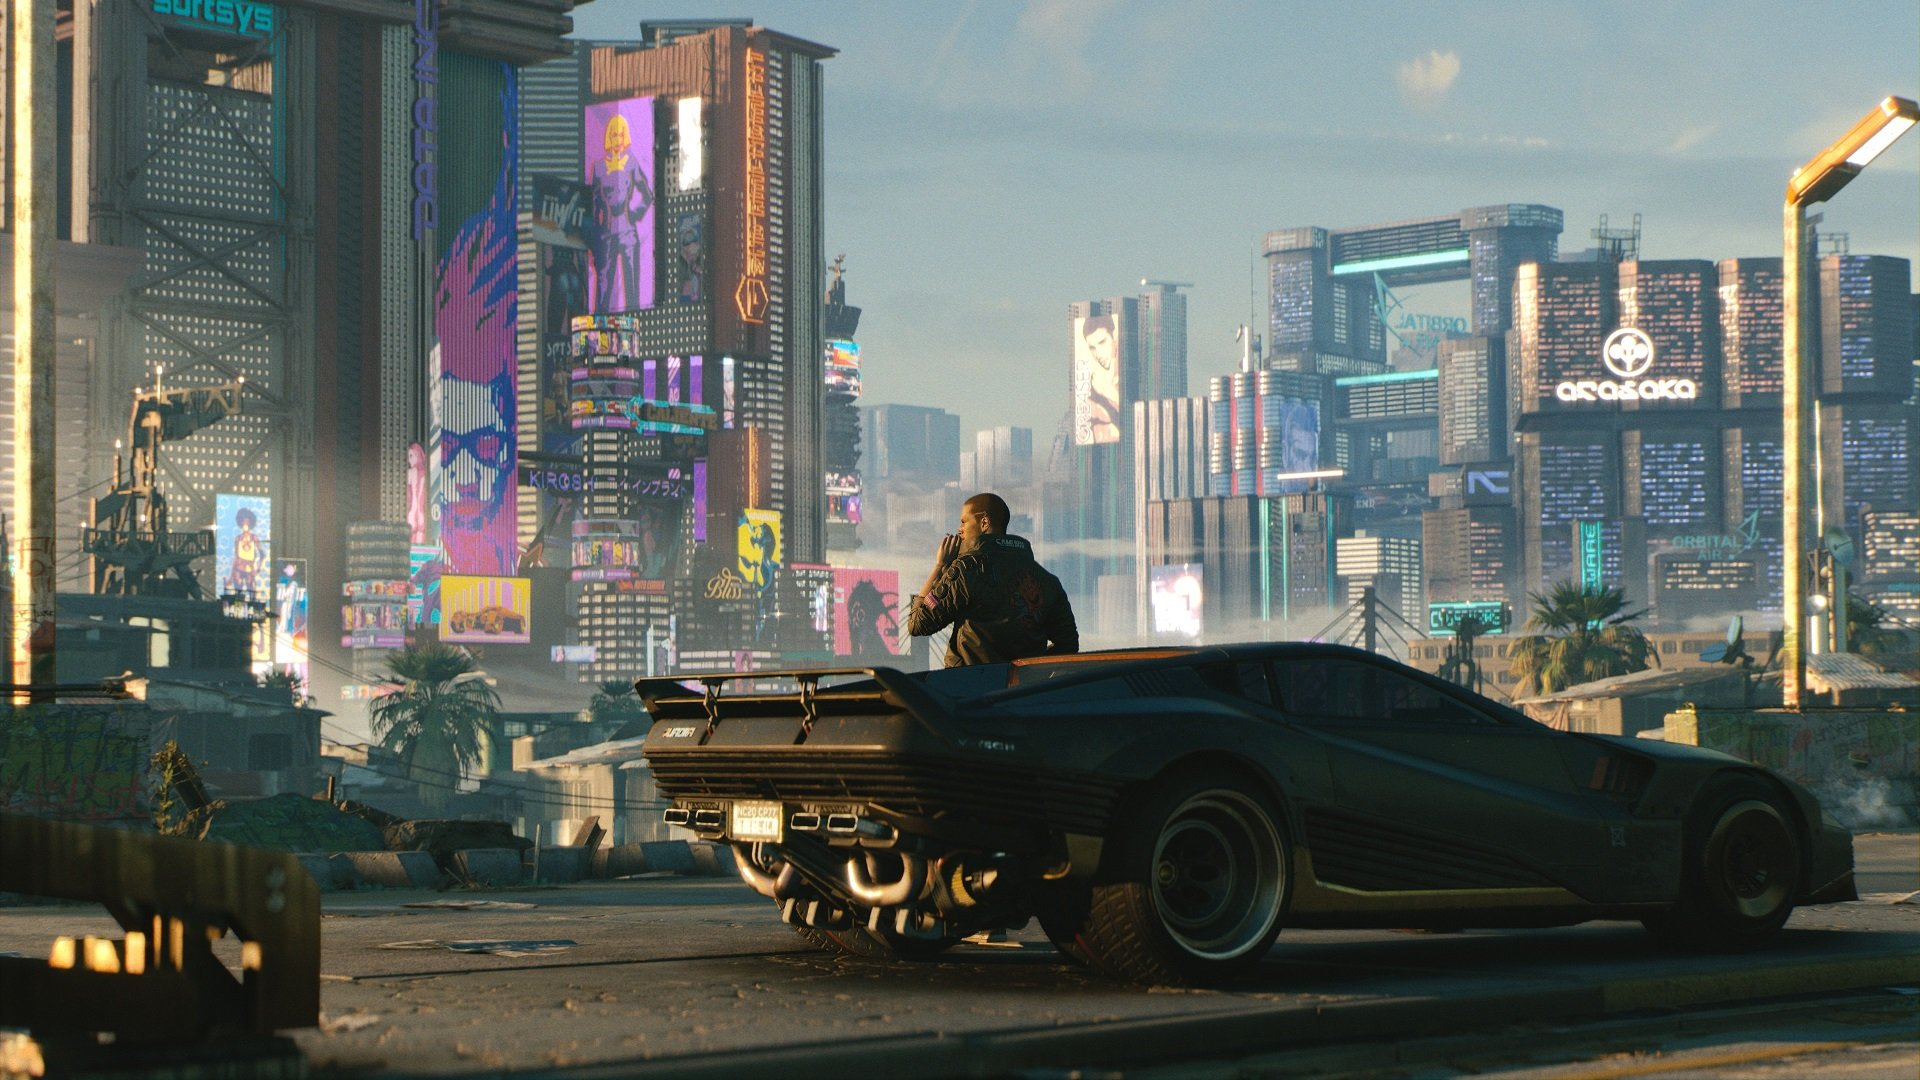 Don't expect Cyberpunk 2077 at this week's Game Awards screenshot